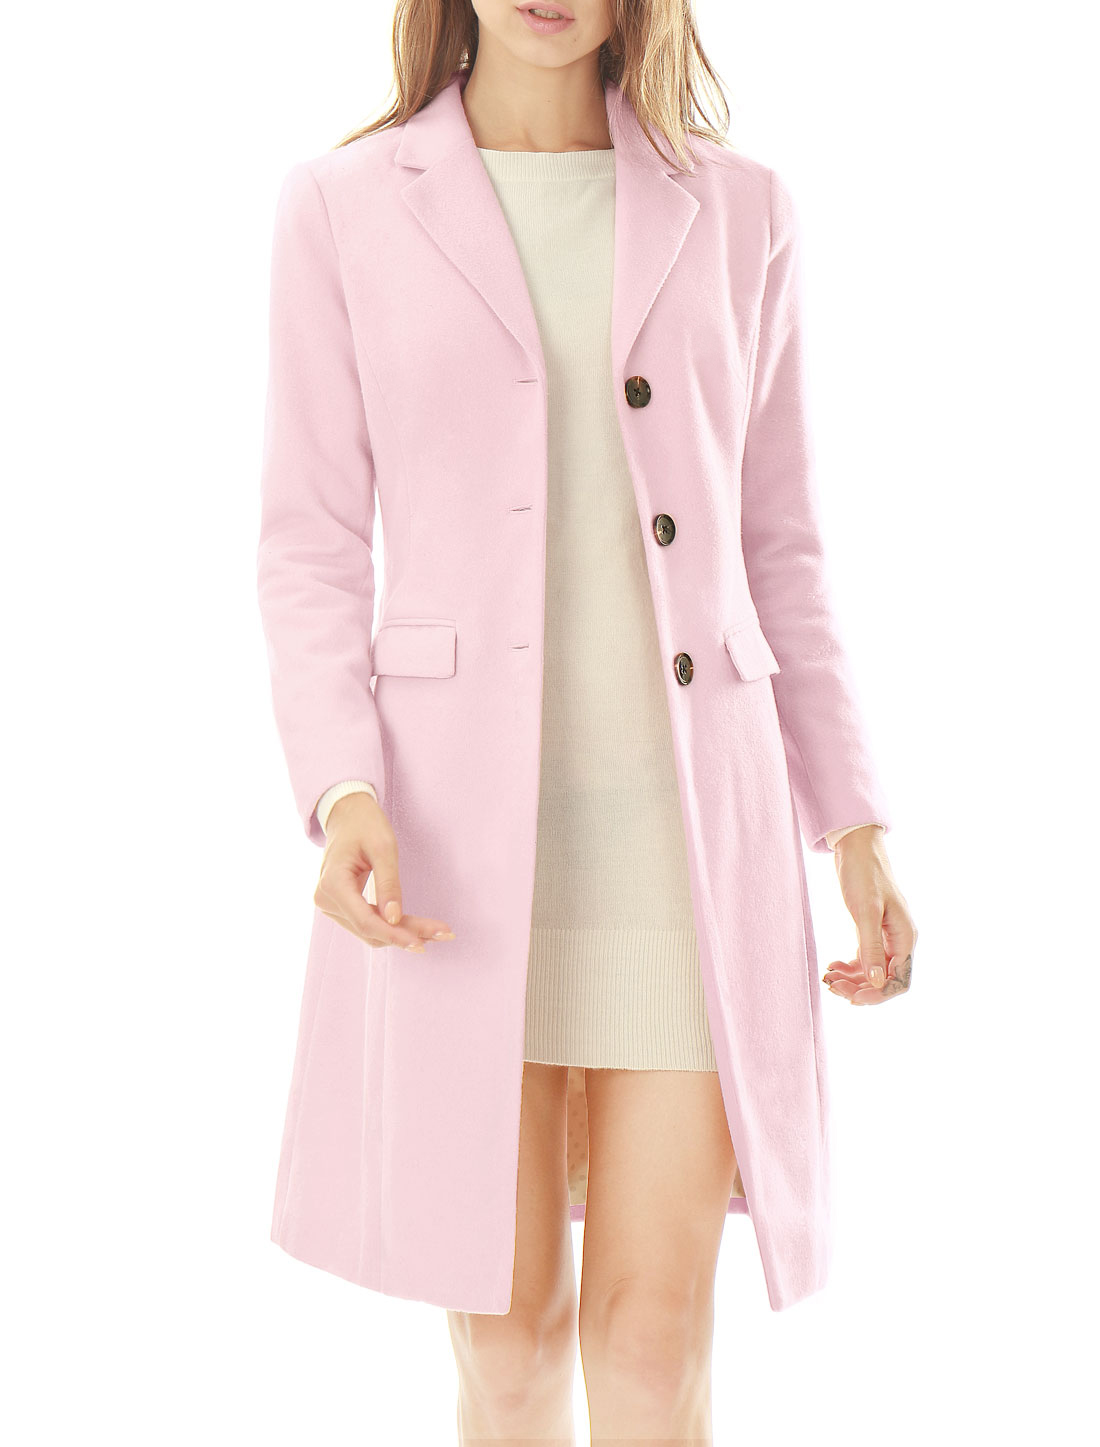 Women Notched Lapel Button Closure Worsted Long Coat Light Pink S